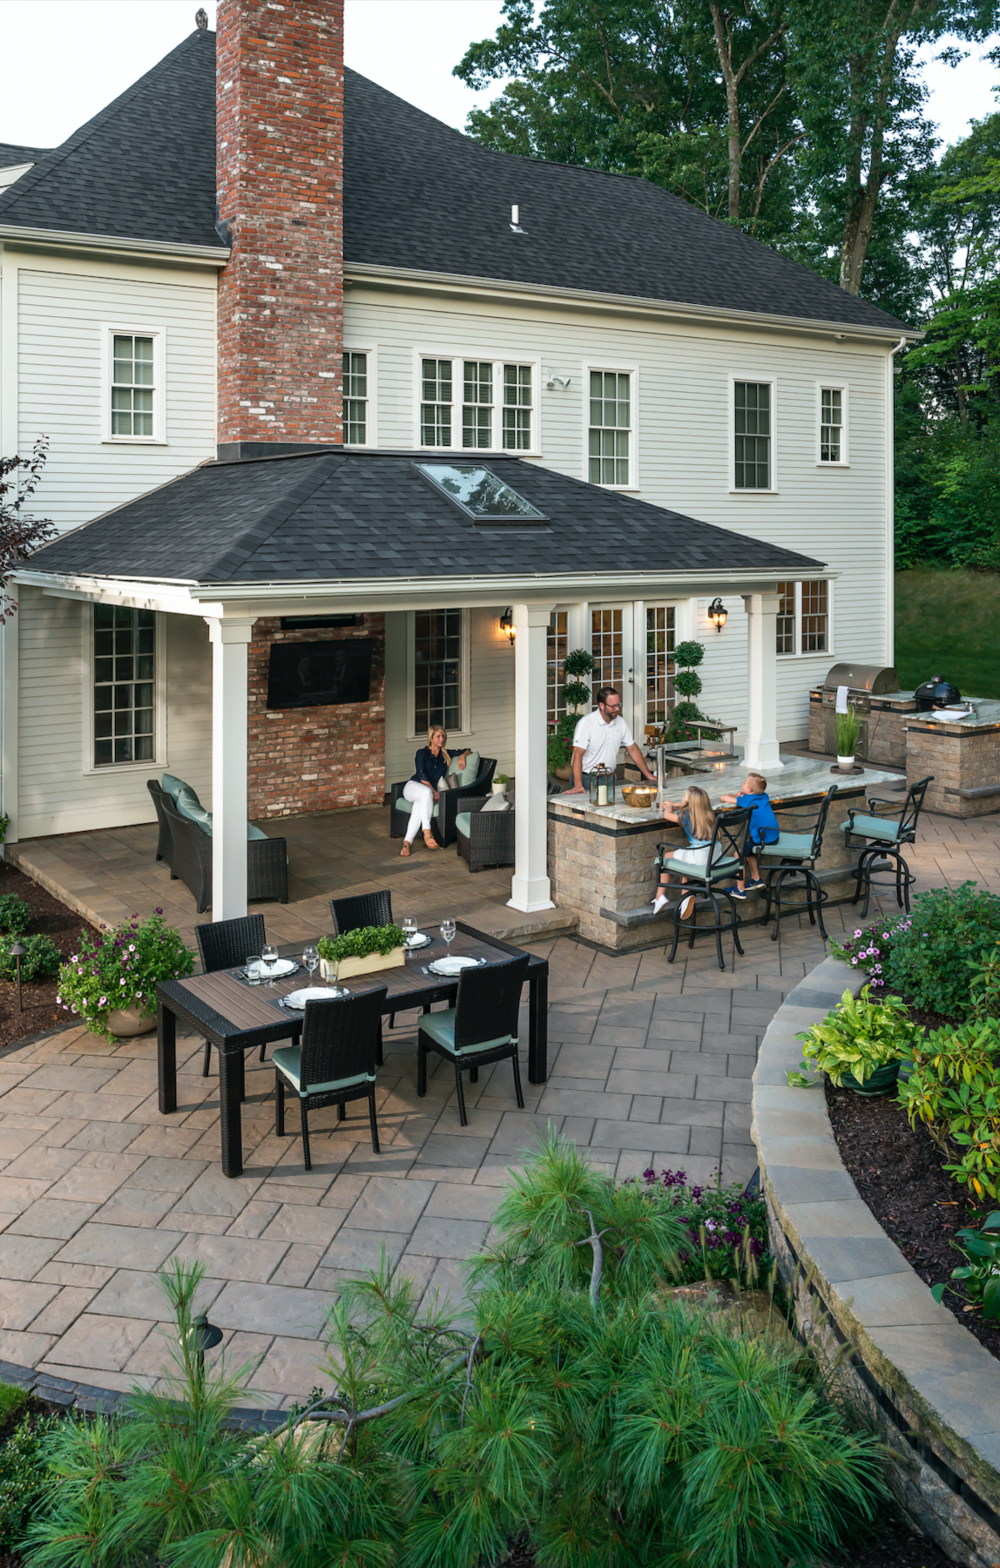 Updating Your Outdoor Fireplace and Kitchen with Masonry in South Londonderry, PA